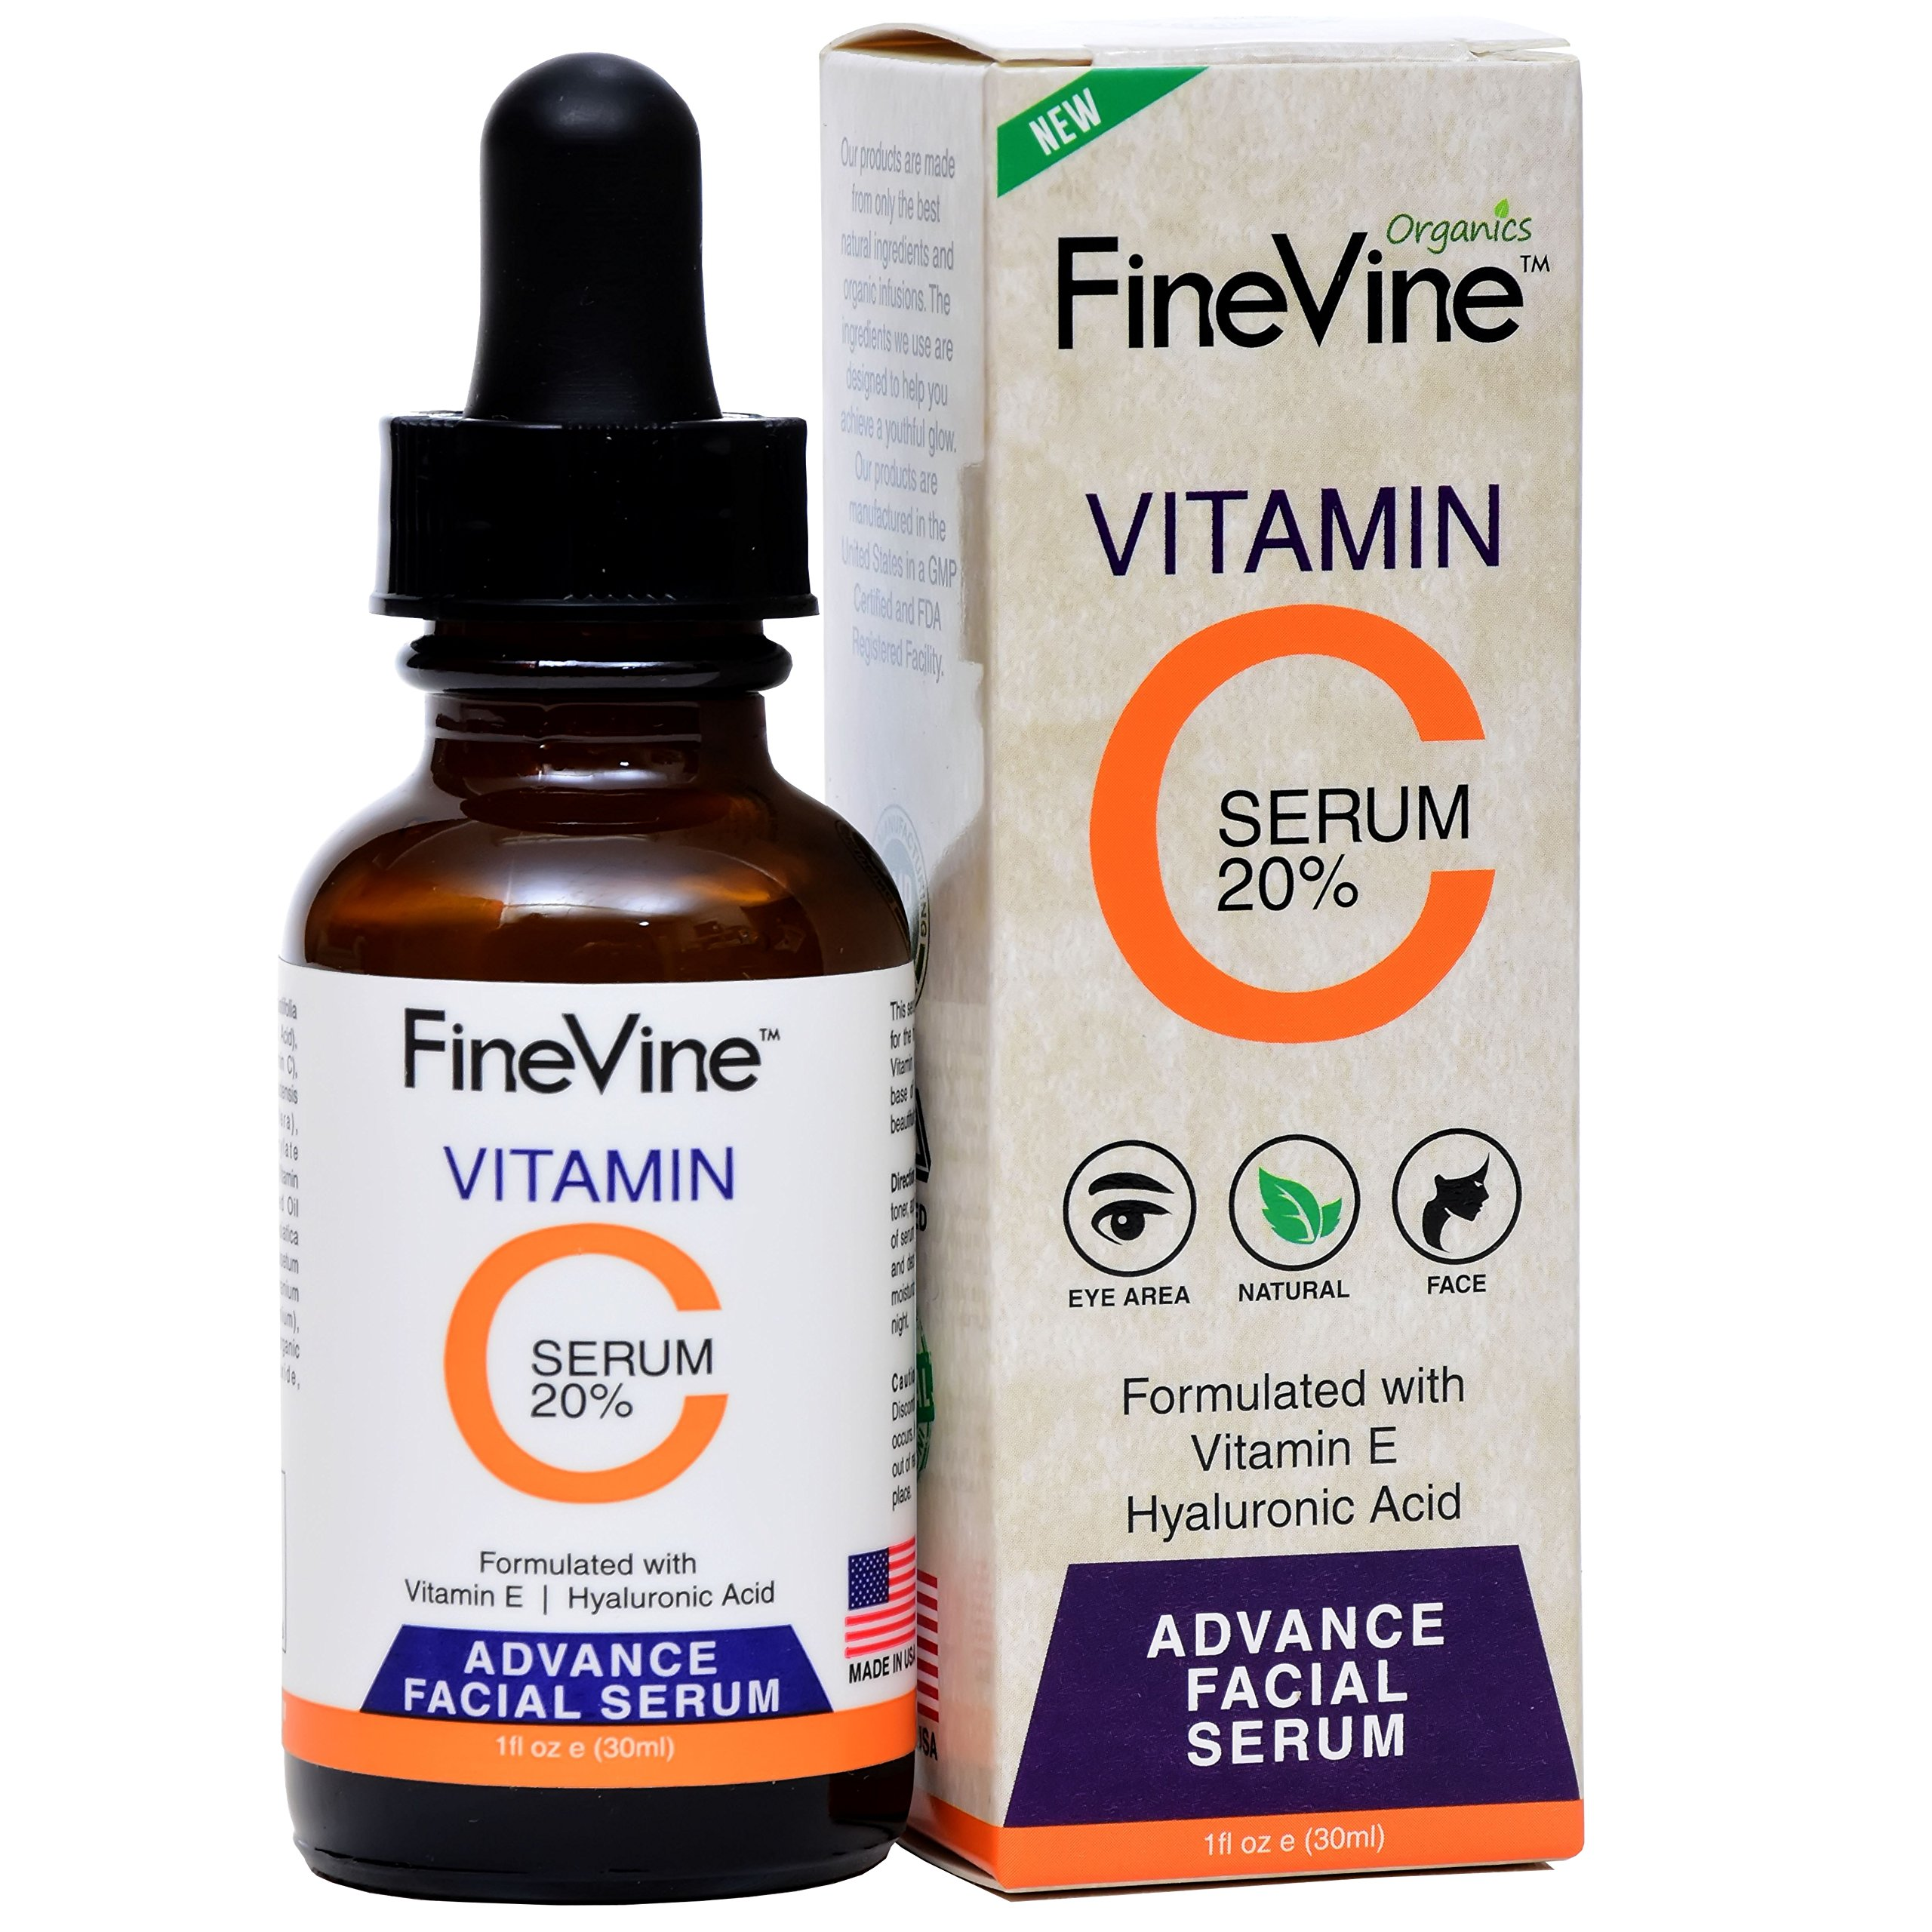 Vitamin C Serum for Face with Hyaluronic Acid - Made in USA - Best Natural Anti-Aging Formula to Correct Age Spots, Skin Sun Damage, Facial Fine Lines & Eye Wrinkles.